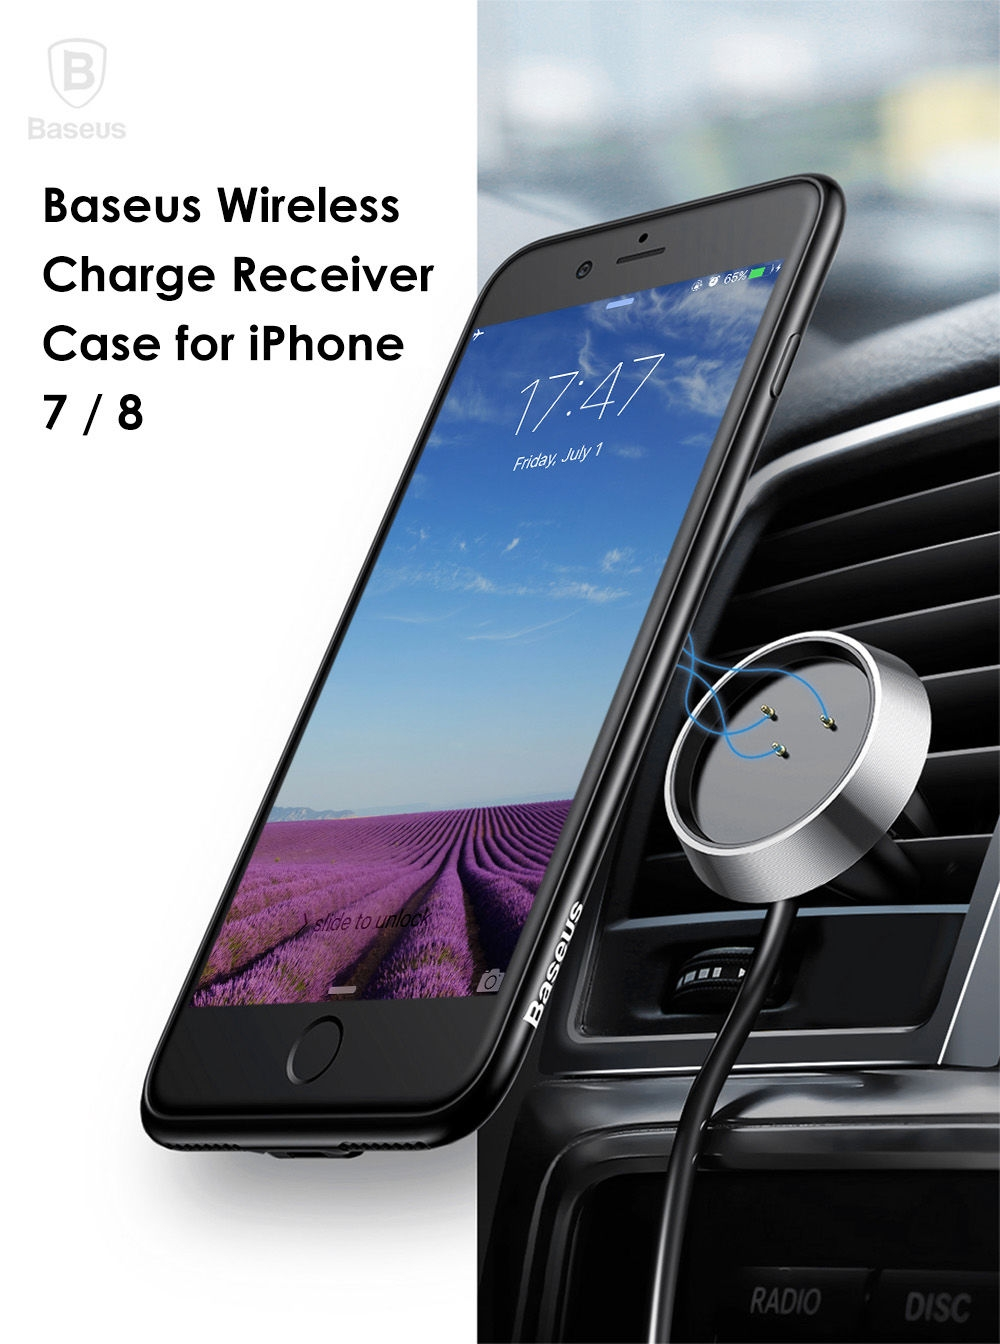 Baseus 5V 1A Multi-function Wireless Charge Receiver Case for iPhone 7 / 8